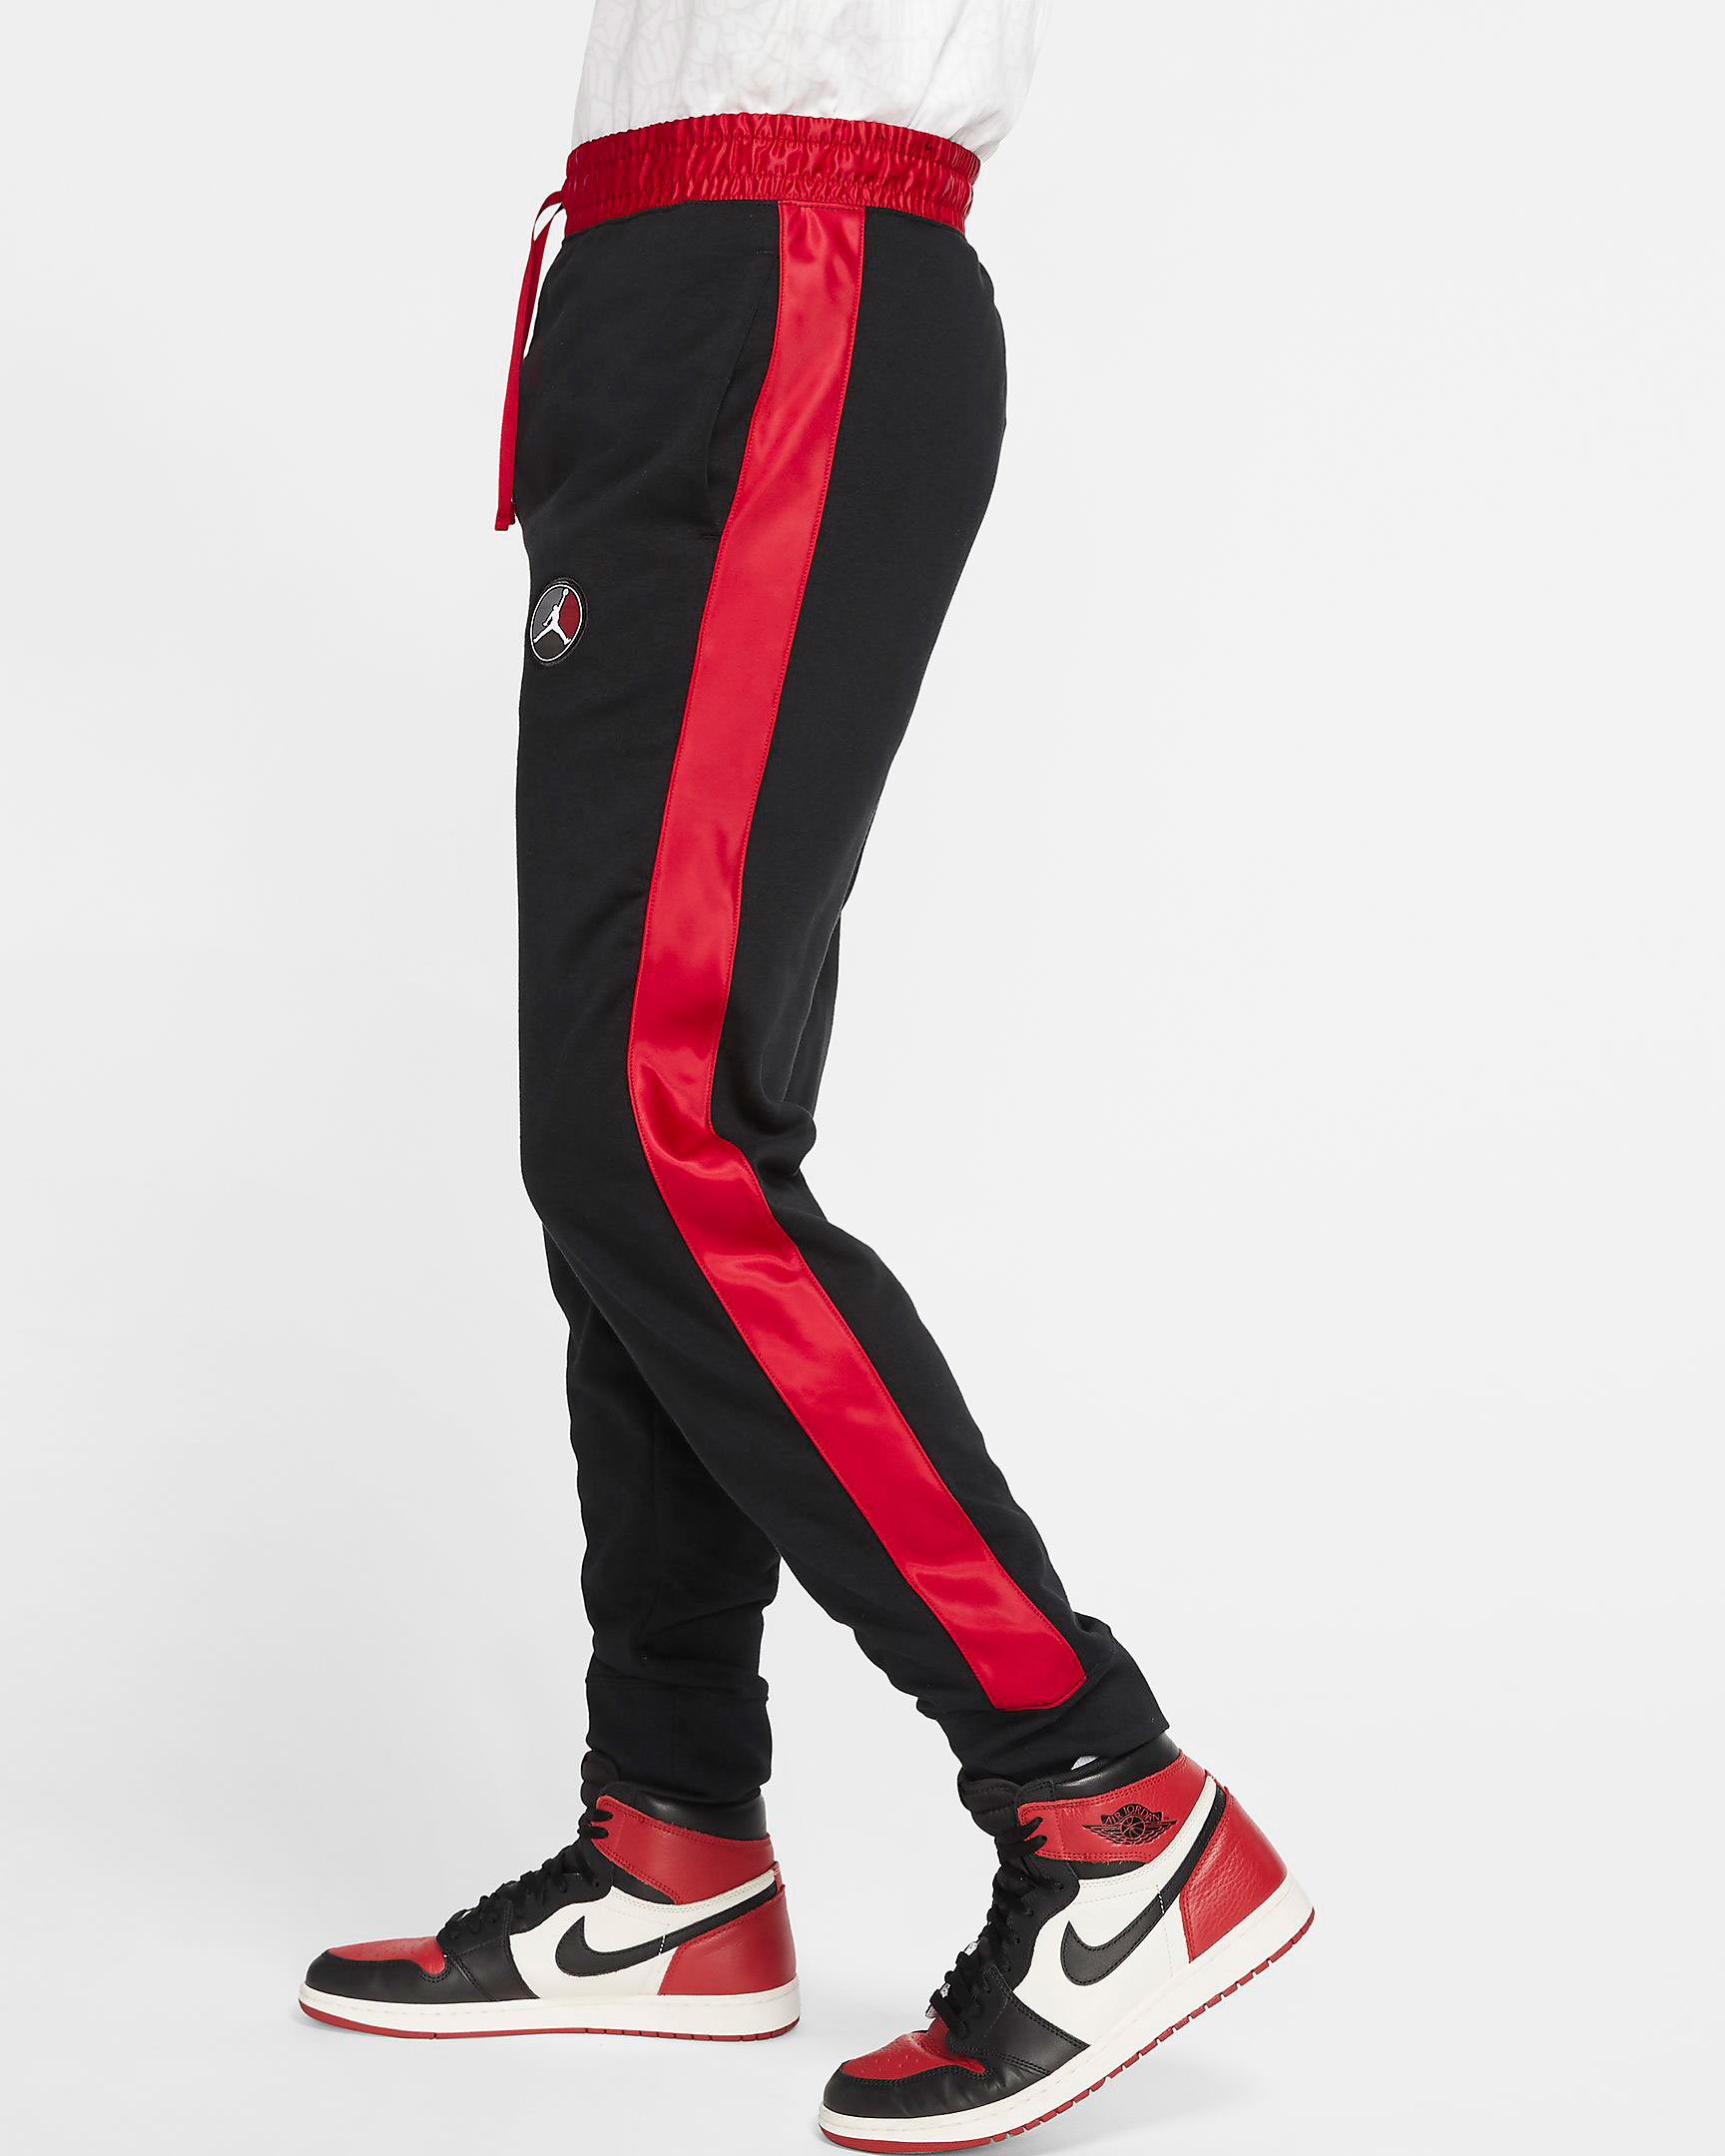 jordan-remastered-pants-black-red-2